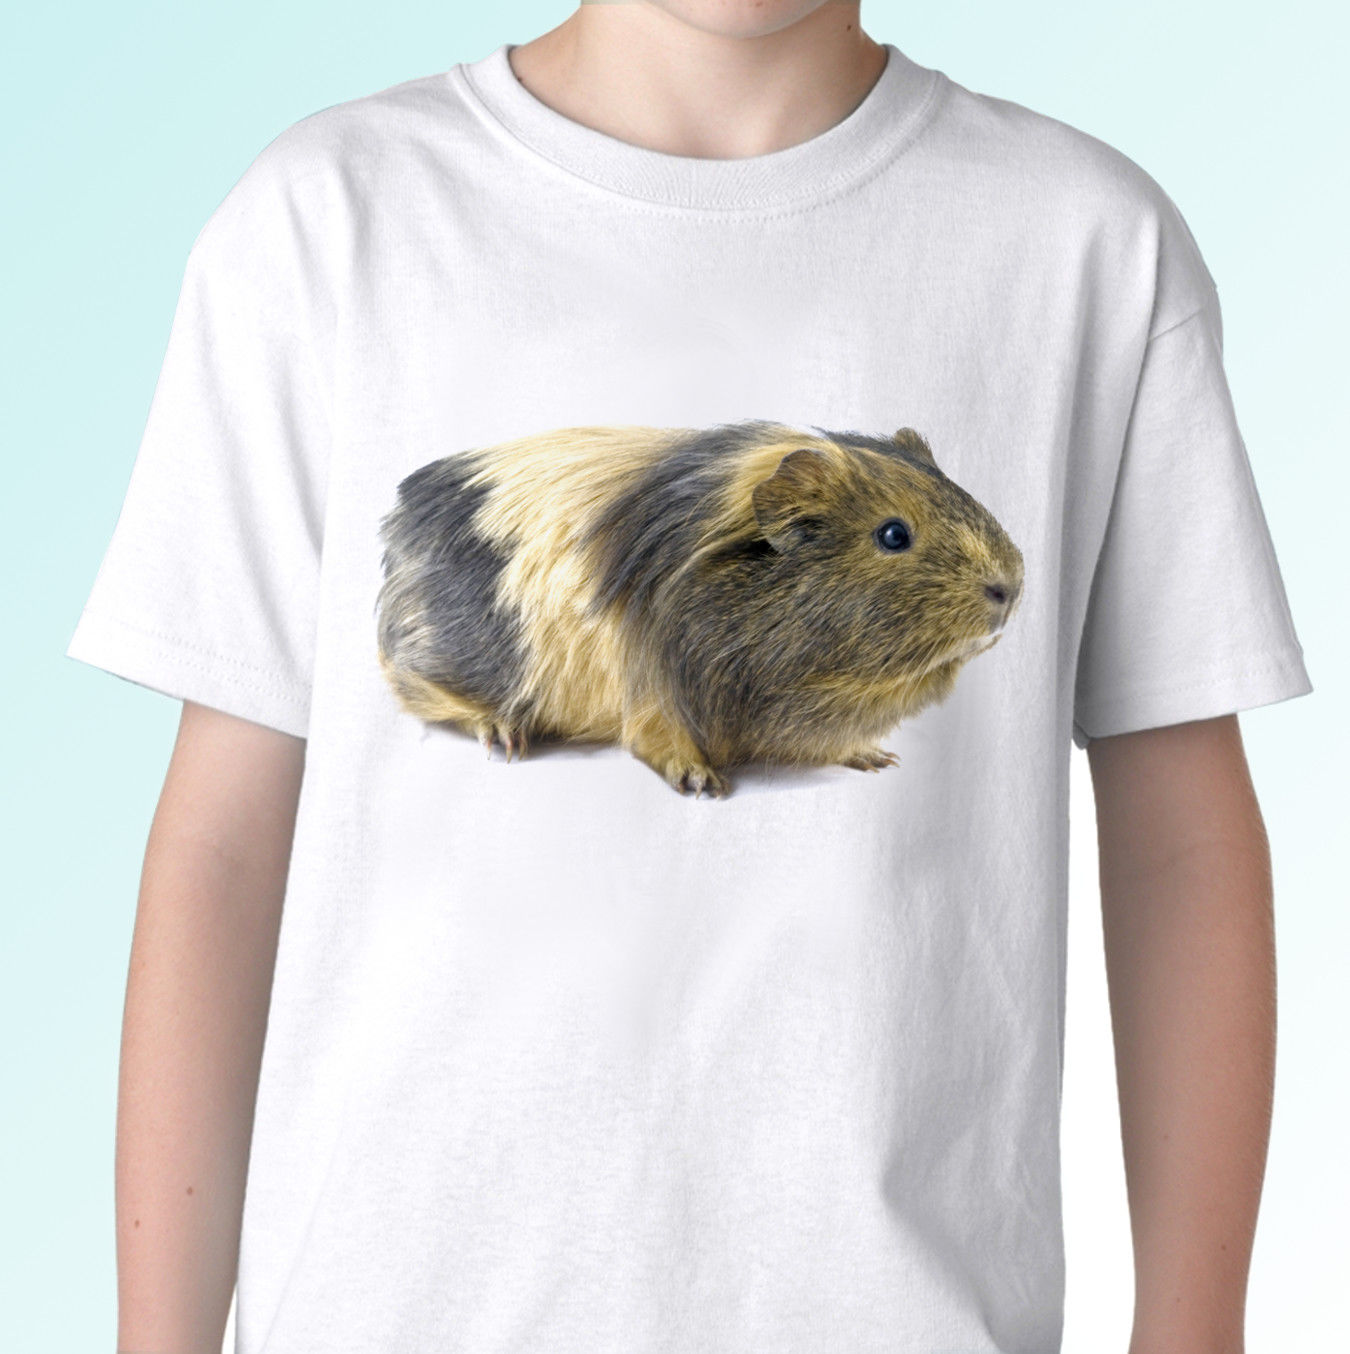 1a4d7cc0 Guinea Pig white t shirt animal tee top design - mens womens kids baby  sizes New T Shirts Funny Tops Tee New Unisex Funny Tops